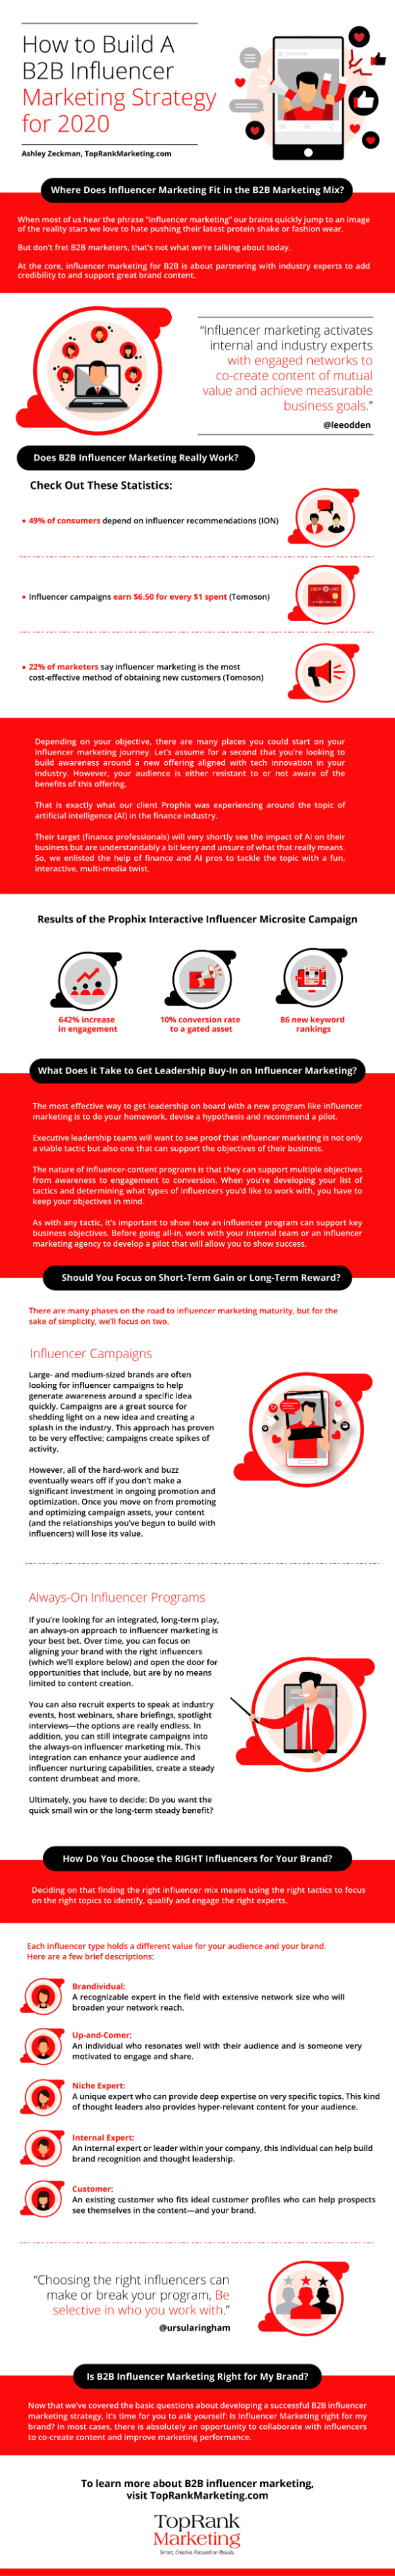 How to Build a B2B Influencer Marketing Strategy for 2020 #infographic